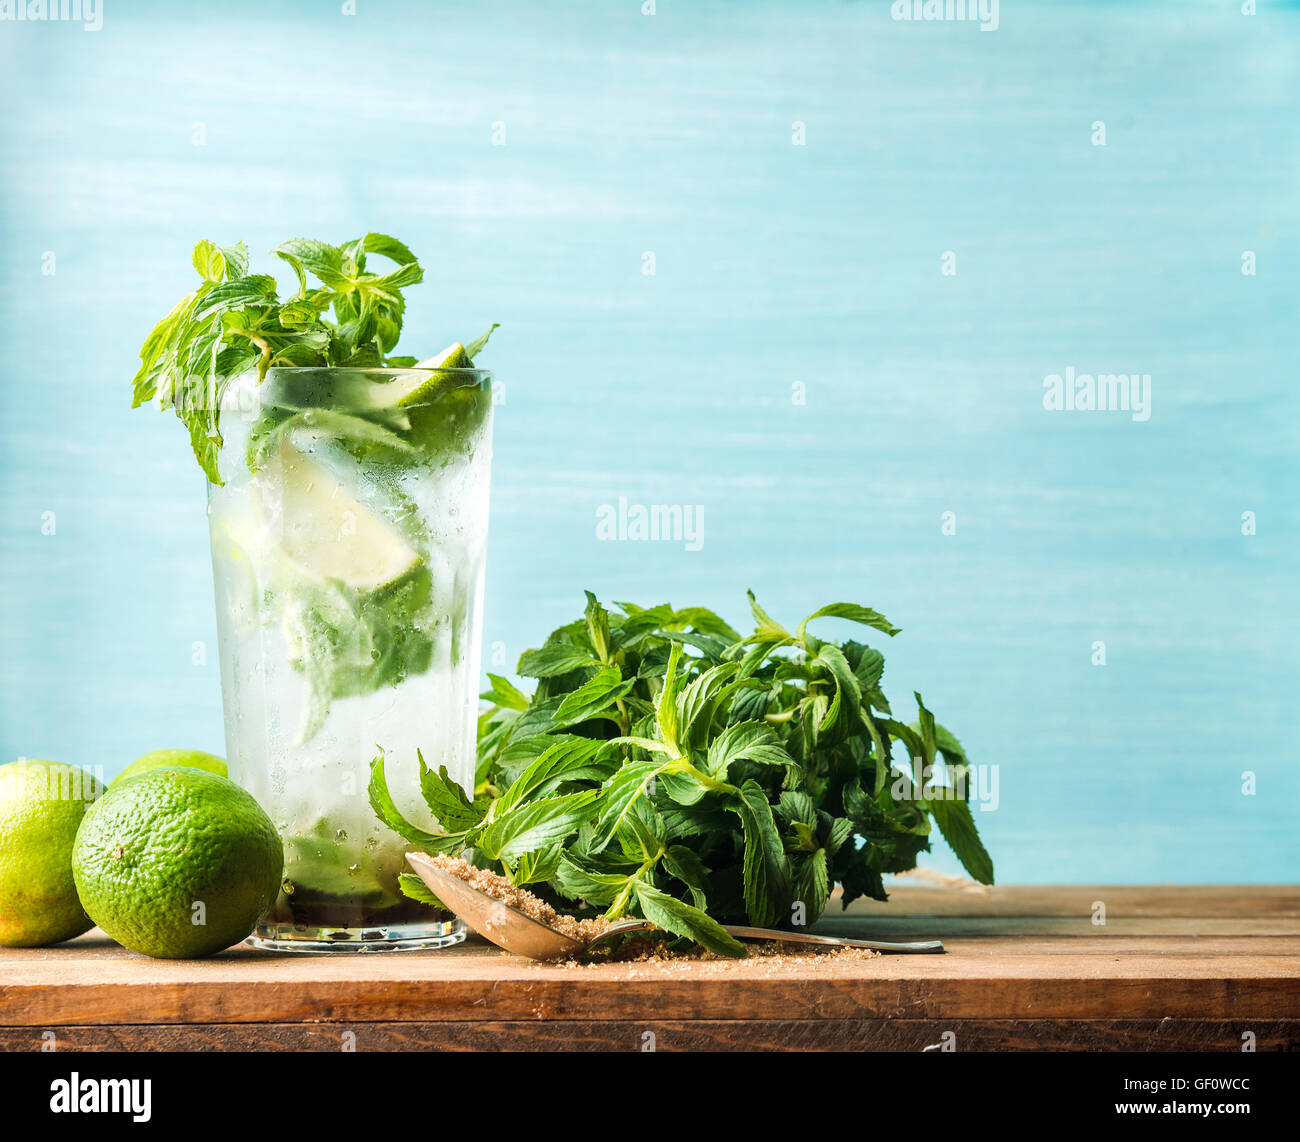 Homemade Mojito cocktail in tall glass with mint, brown sugar and limes. Stock Photo